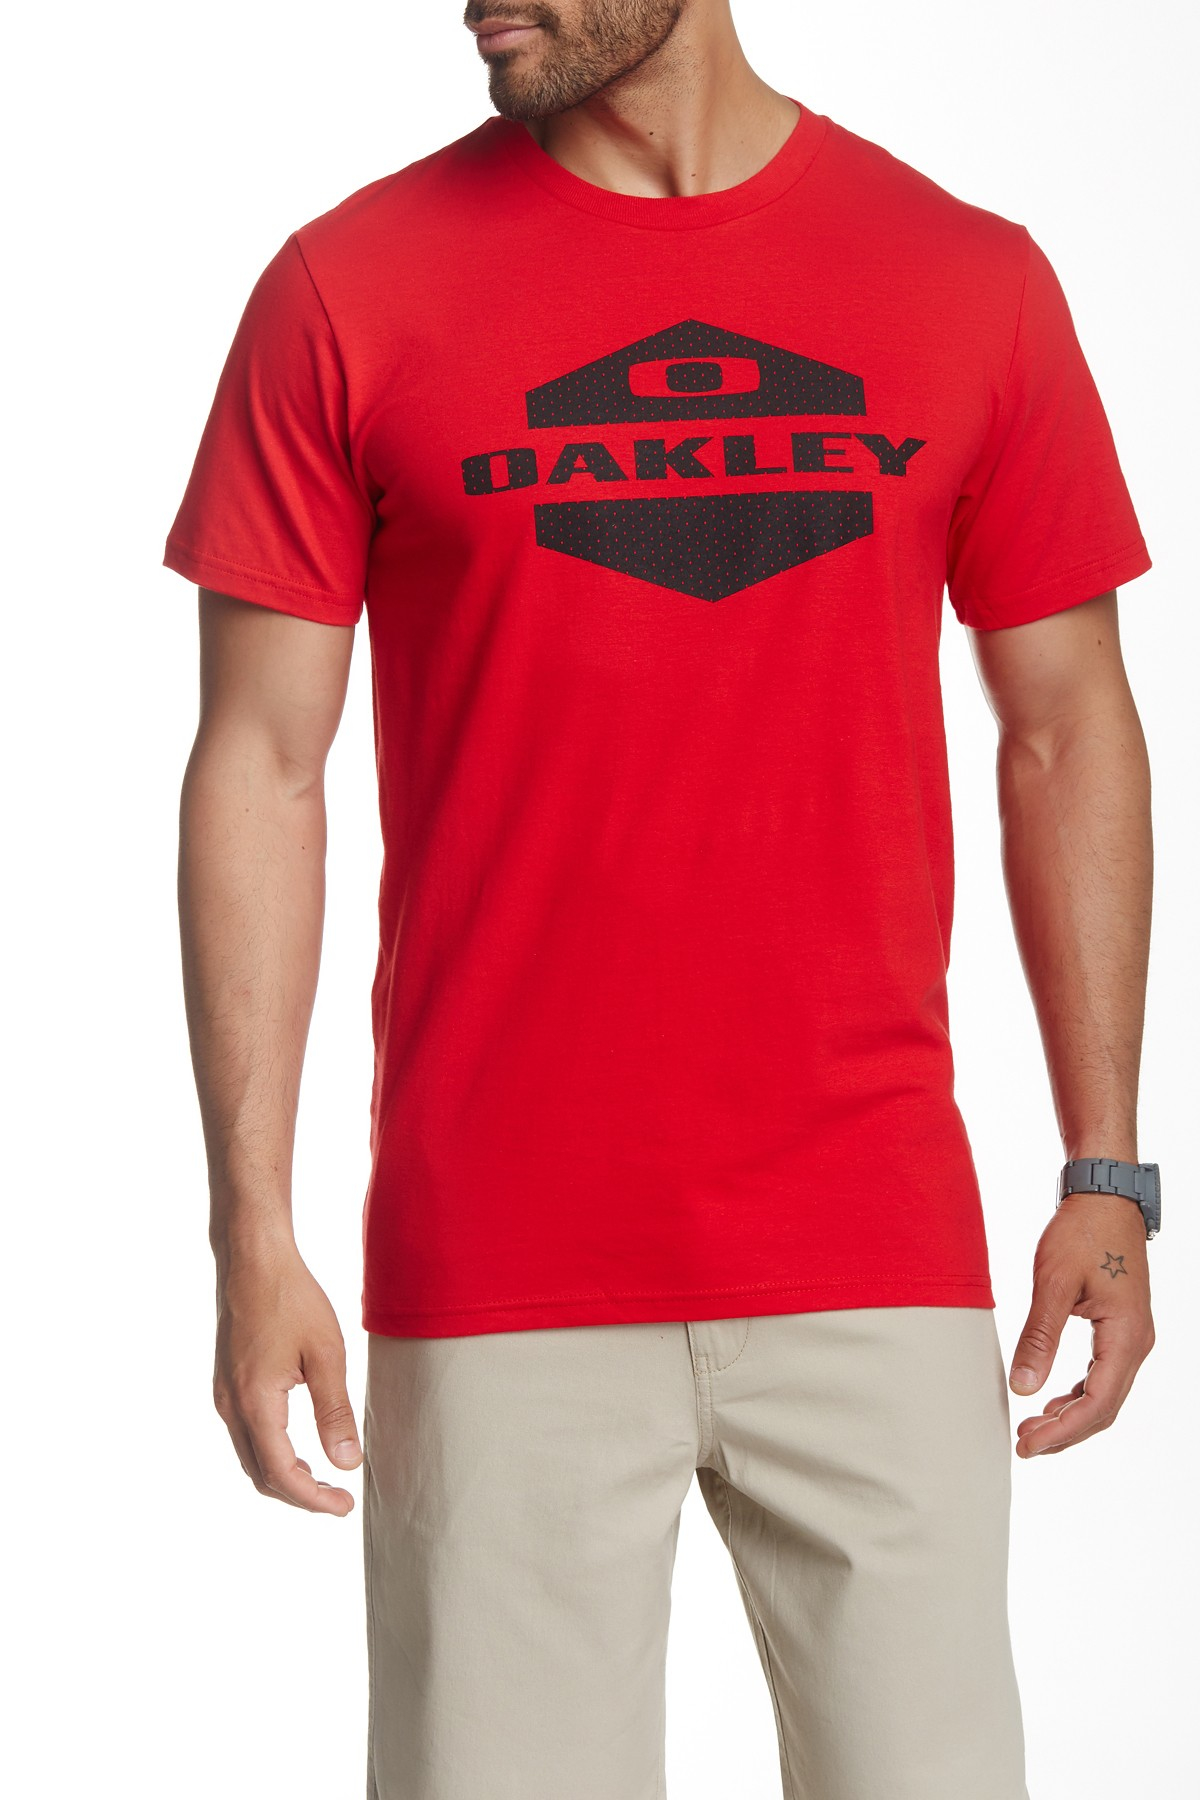 Oakley locker room tee in red for men lyst for Locker loop dress shirt